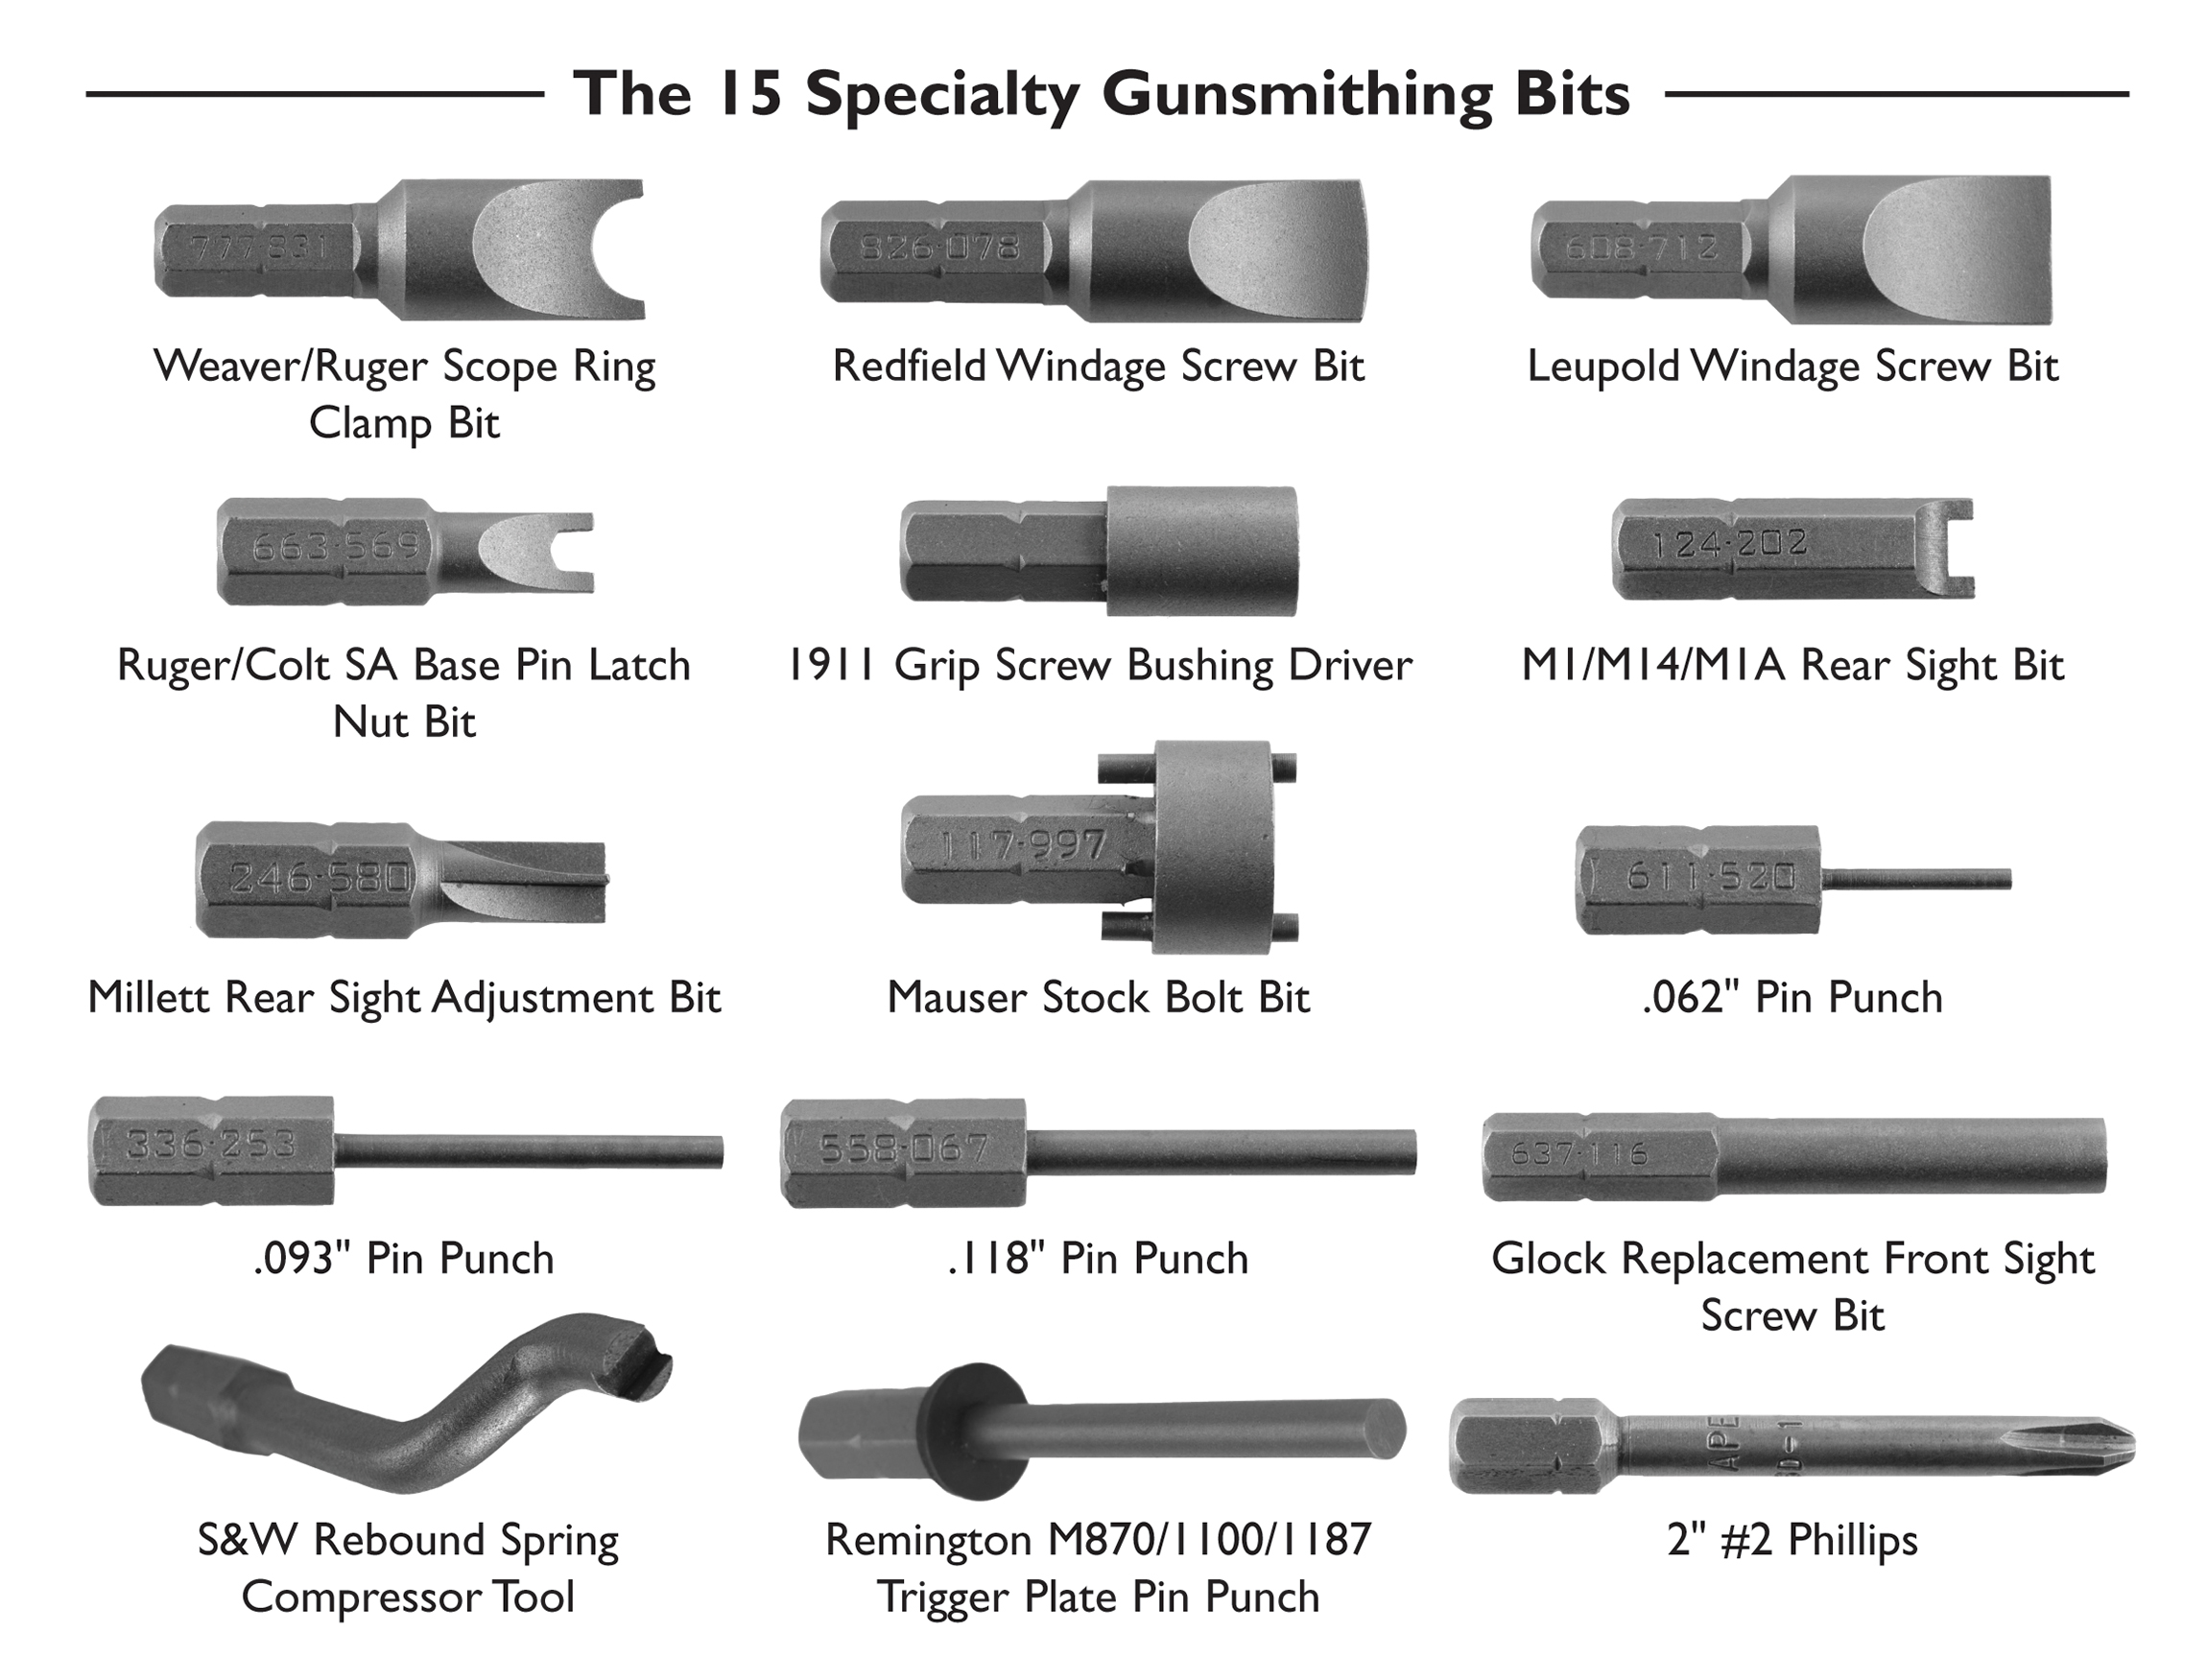 Wheeler Replacement Bits - 562194 All 15 Spec Bits with Names and Header